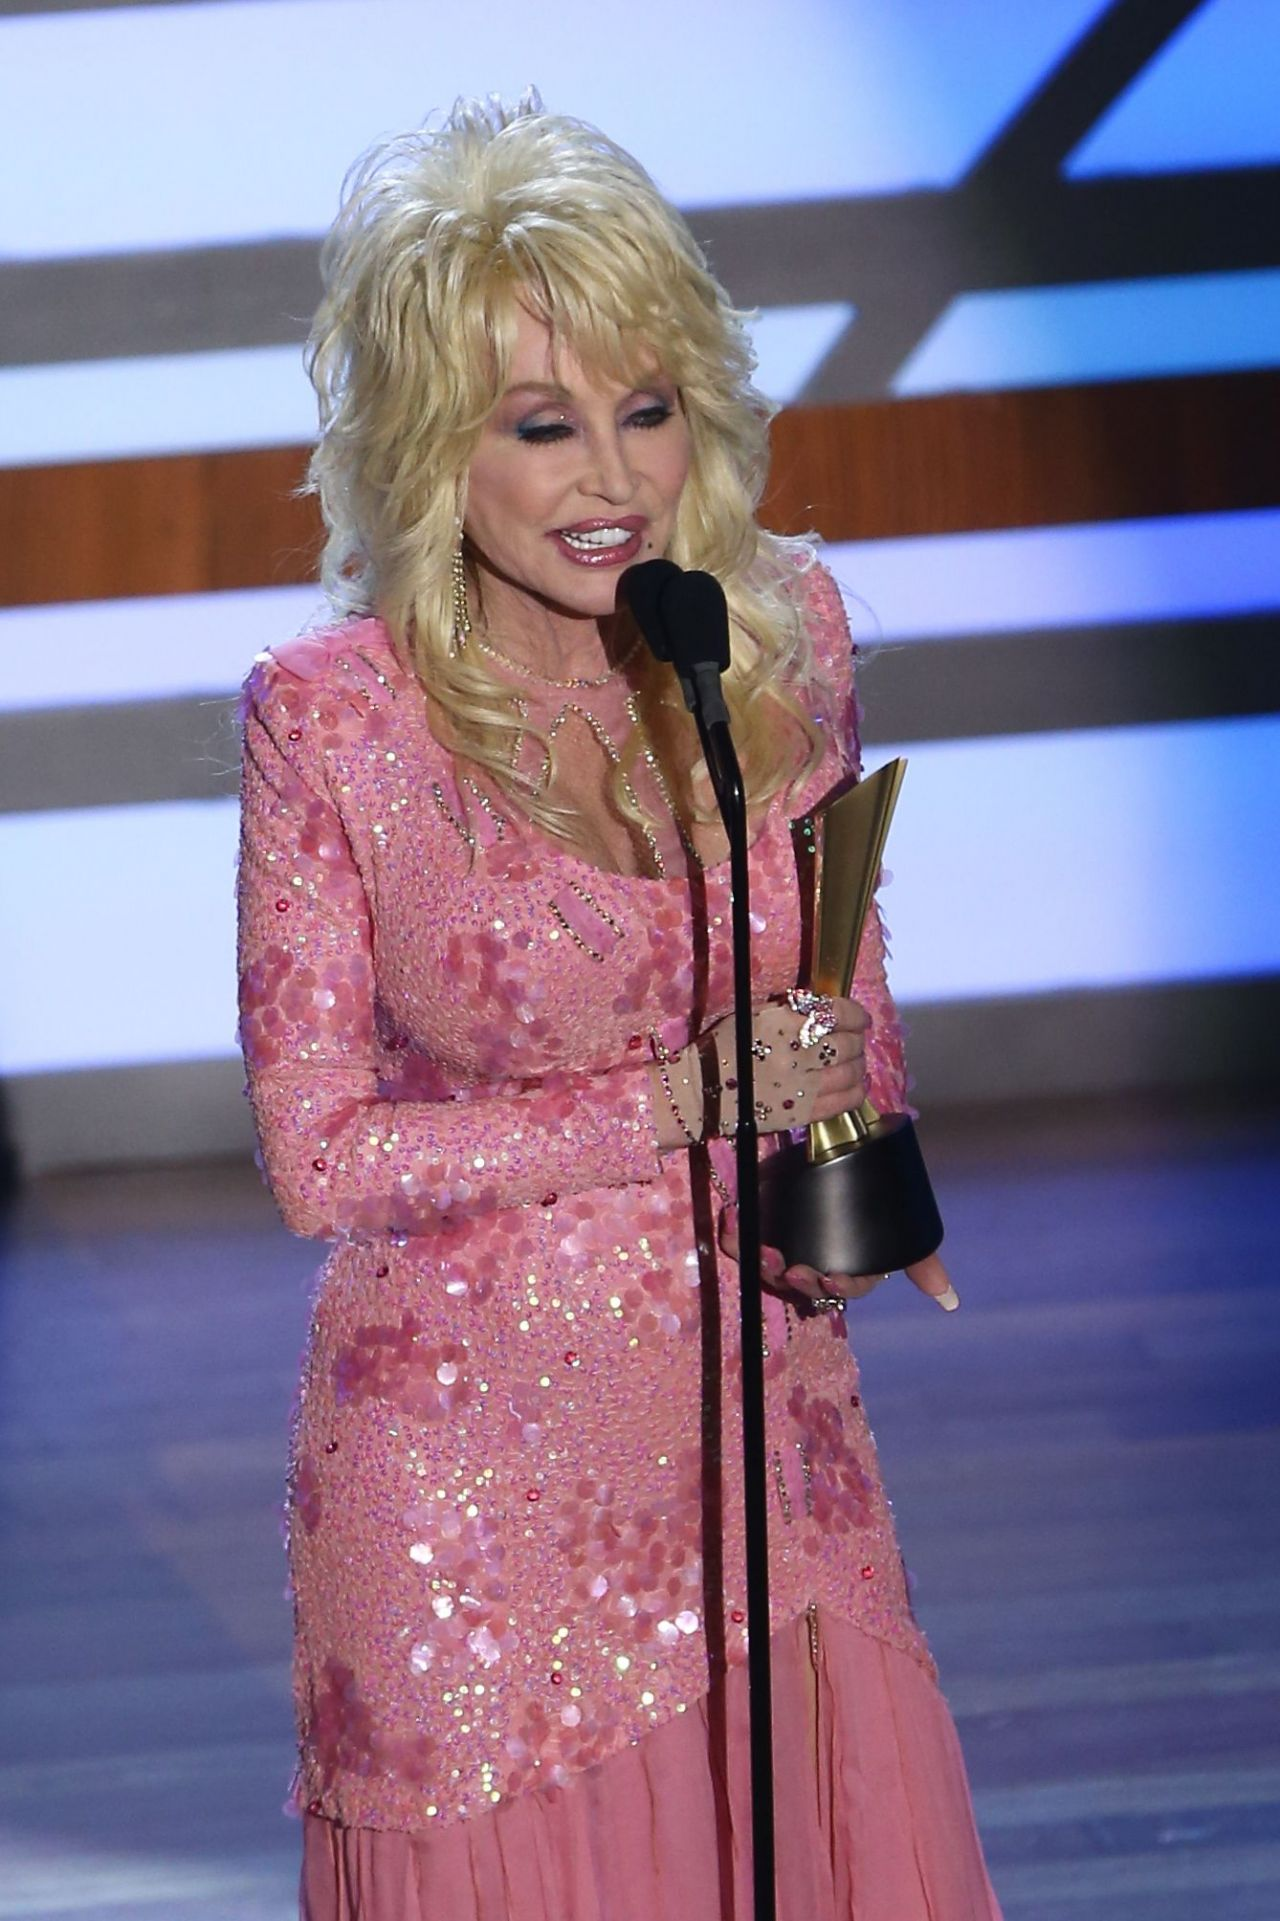 Dolly Parton Acm Honors In Nashville 08 23 2017